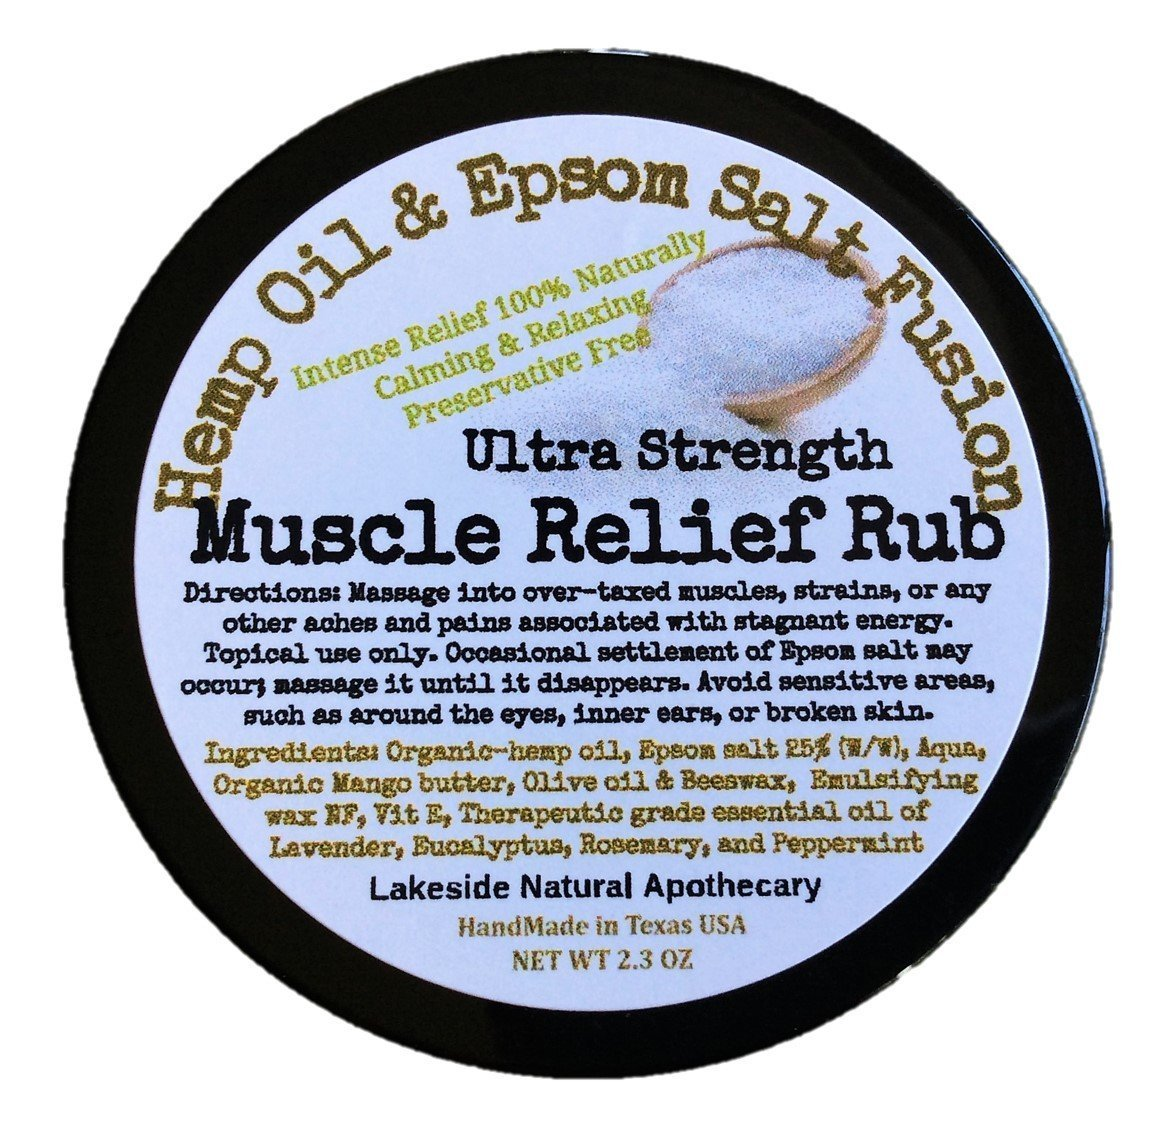 Hemp-Epsom Fusion Epsom Salt & Therapeutic Essential Oil Synergy Massage Lotion Salve Rub in Hemp Oil for Muscle Ache & Pain Relief 100% Natural (2 Jars)